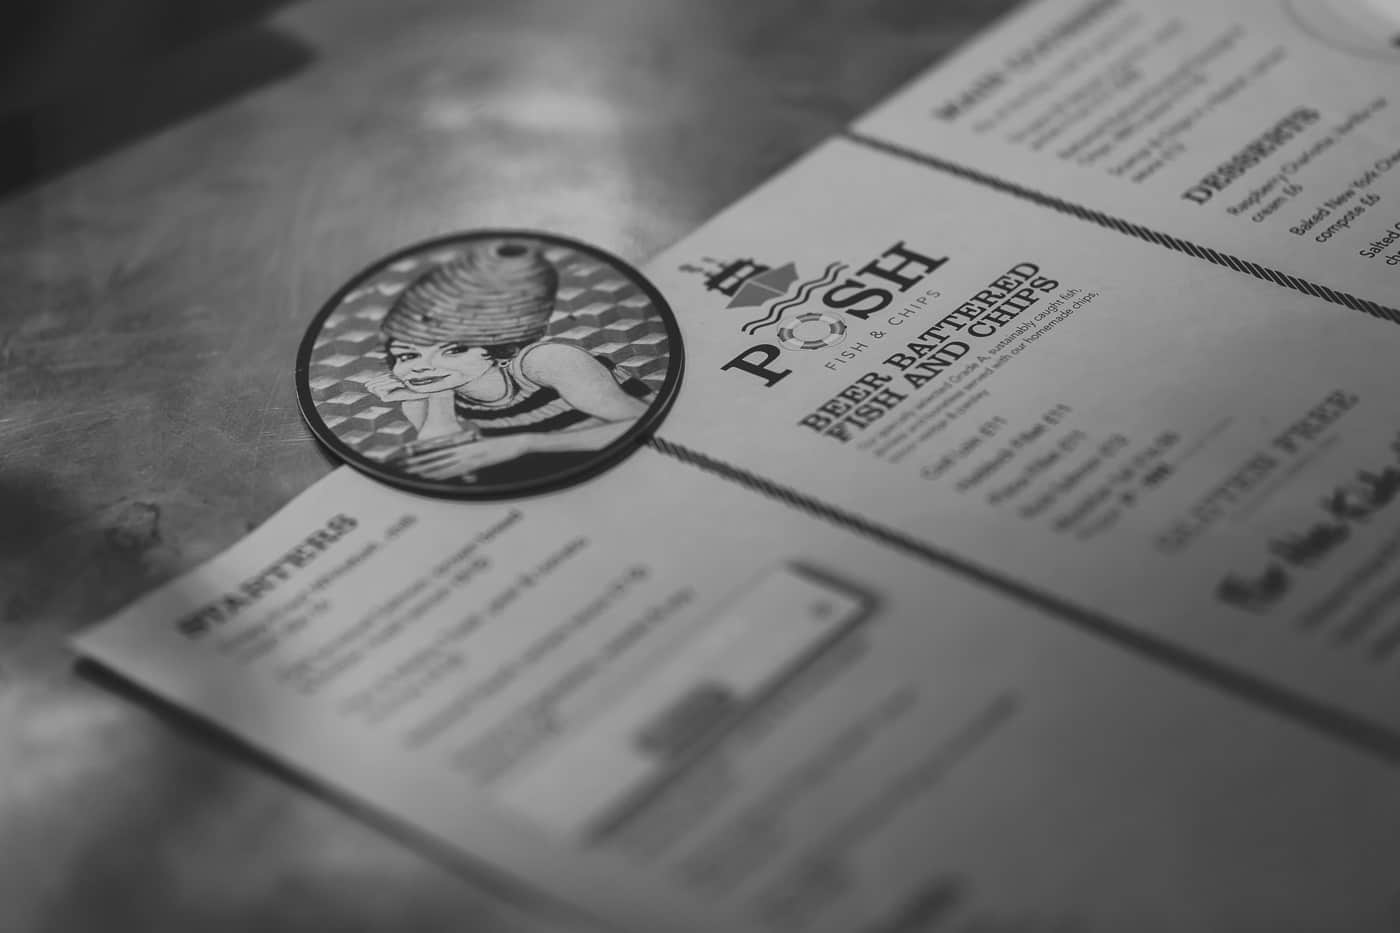 Fish and chip menu with the Beehive logo beer mat on